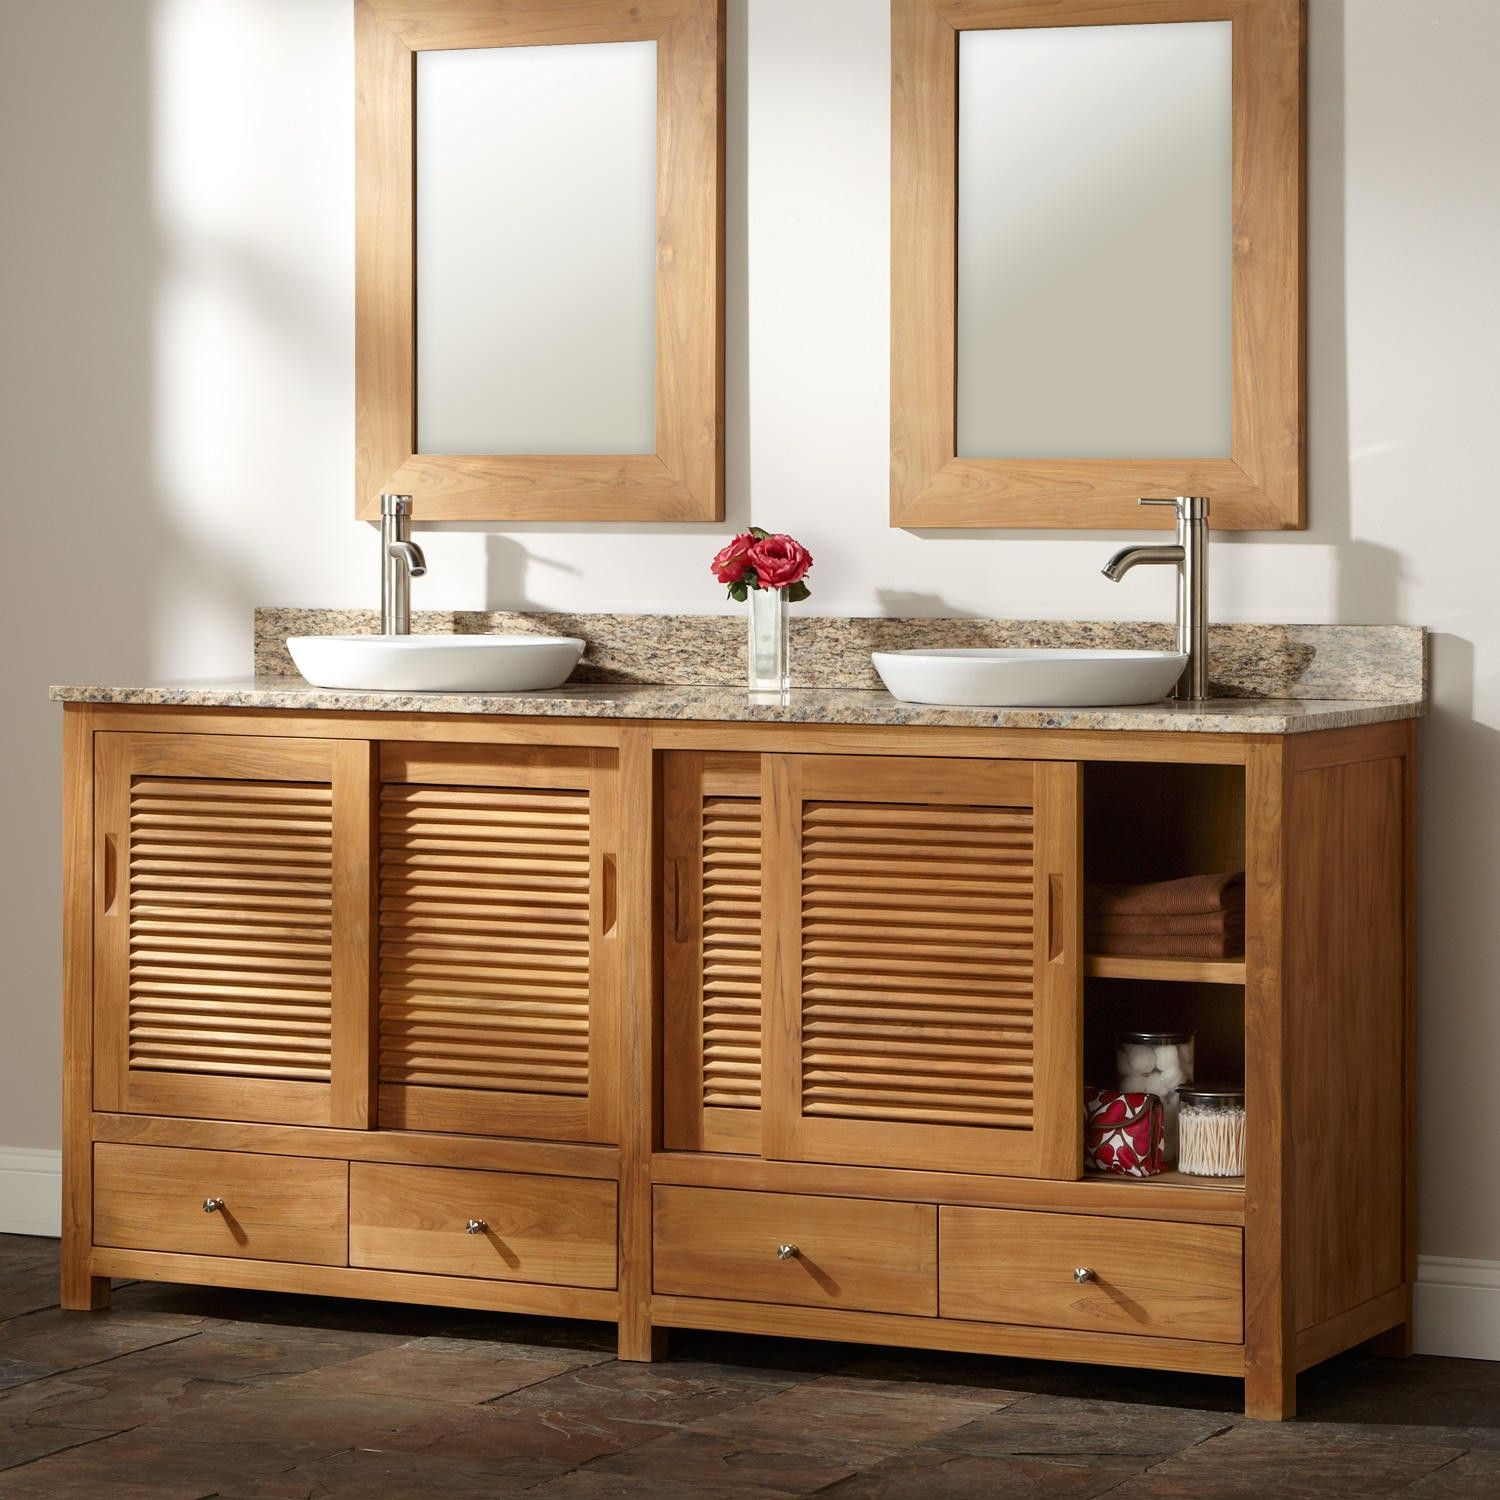 72 arrey teak double vanity for semi recessed sinks kids bathroom rh pinterest com